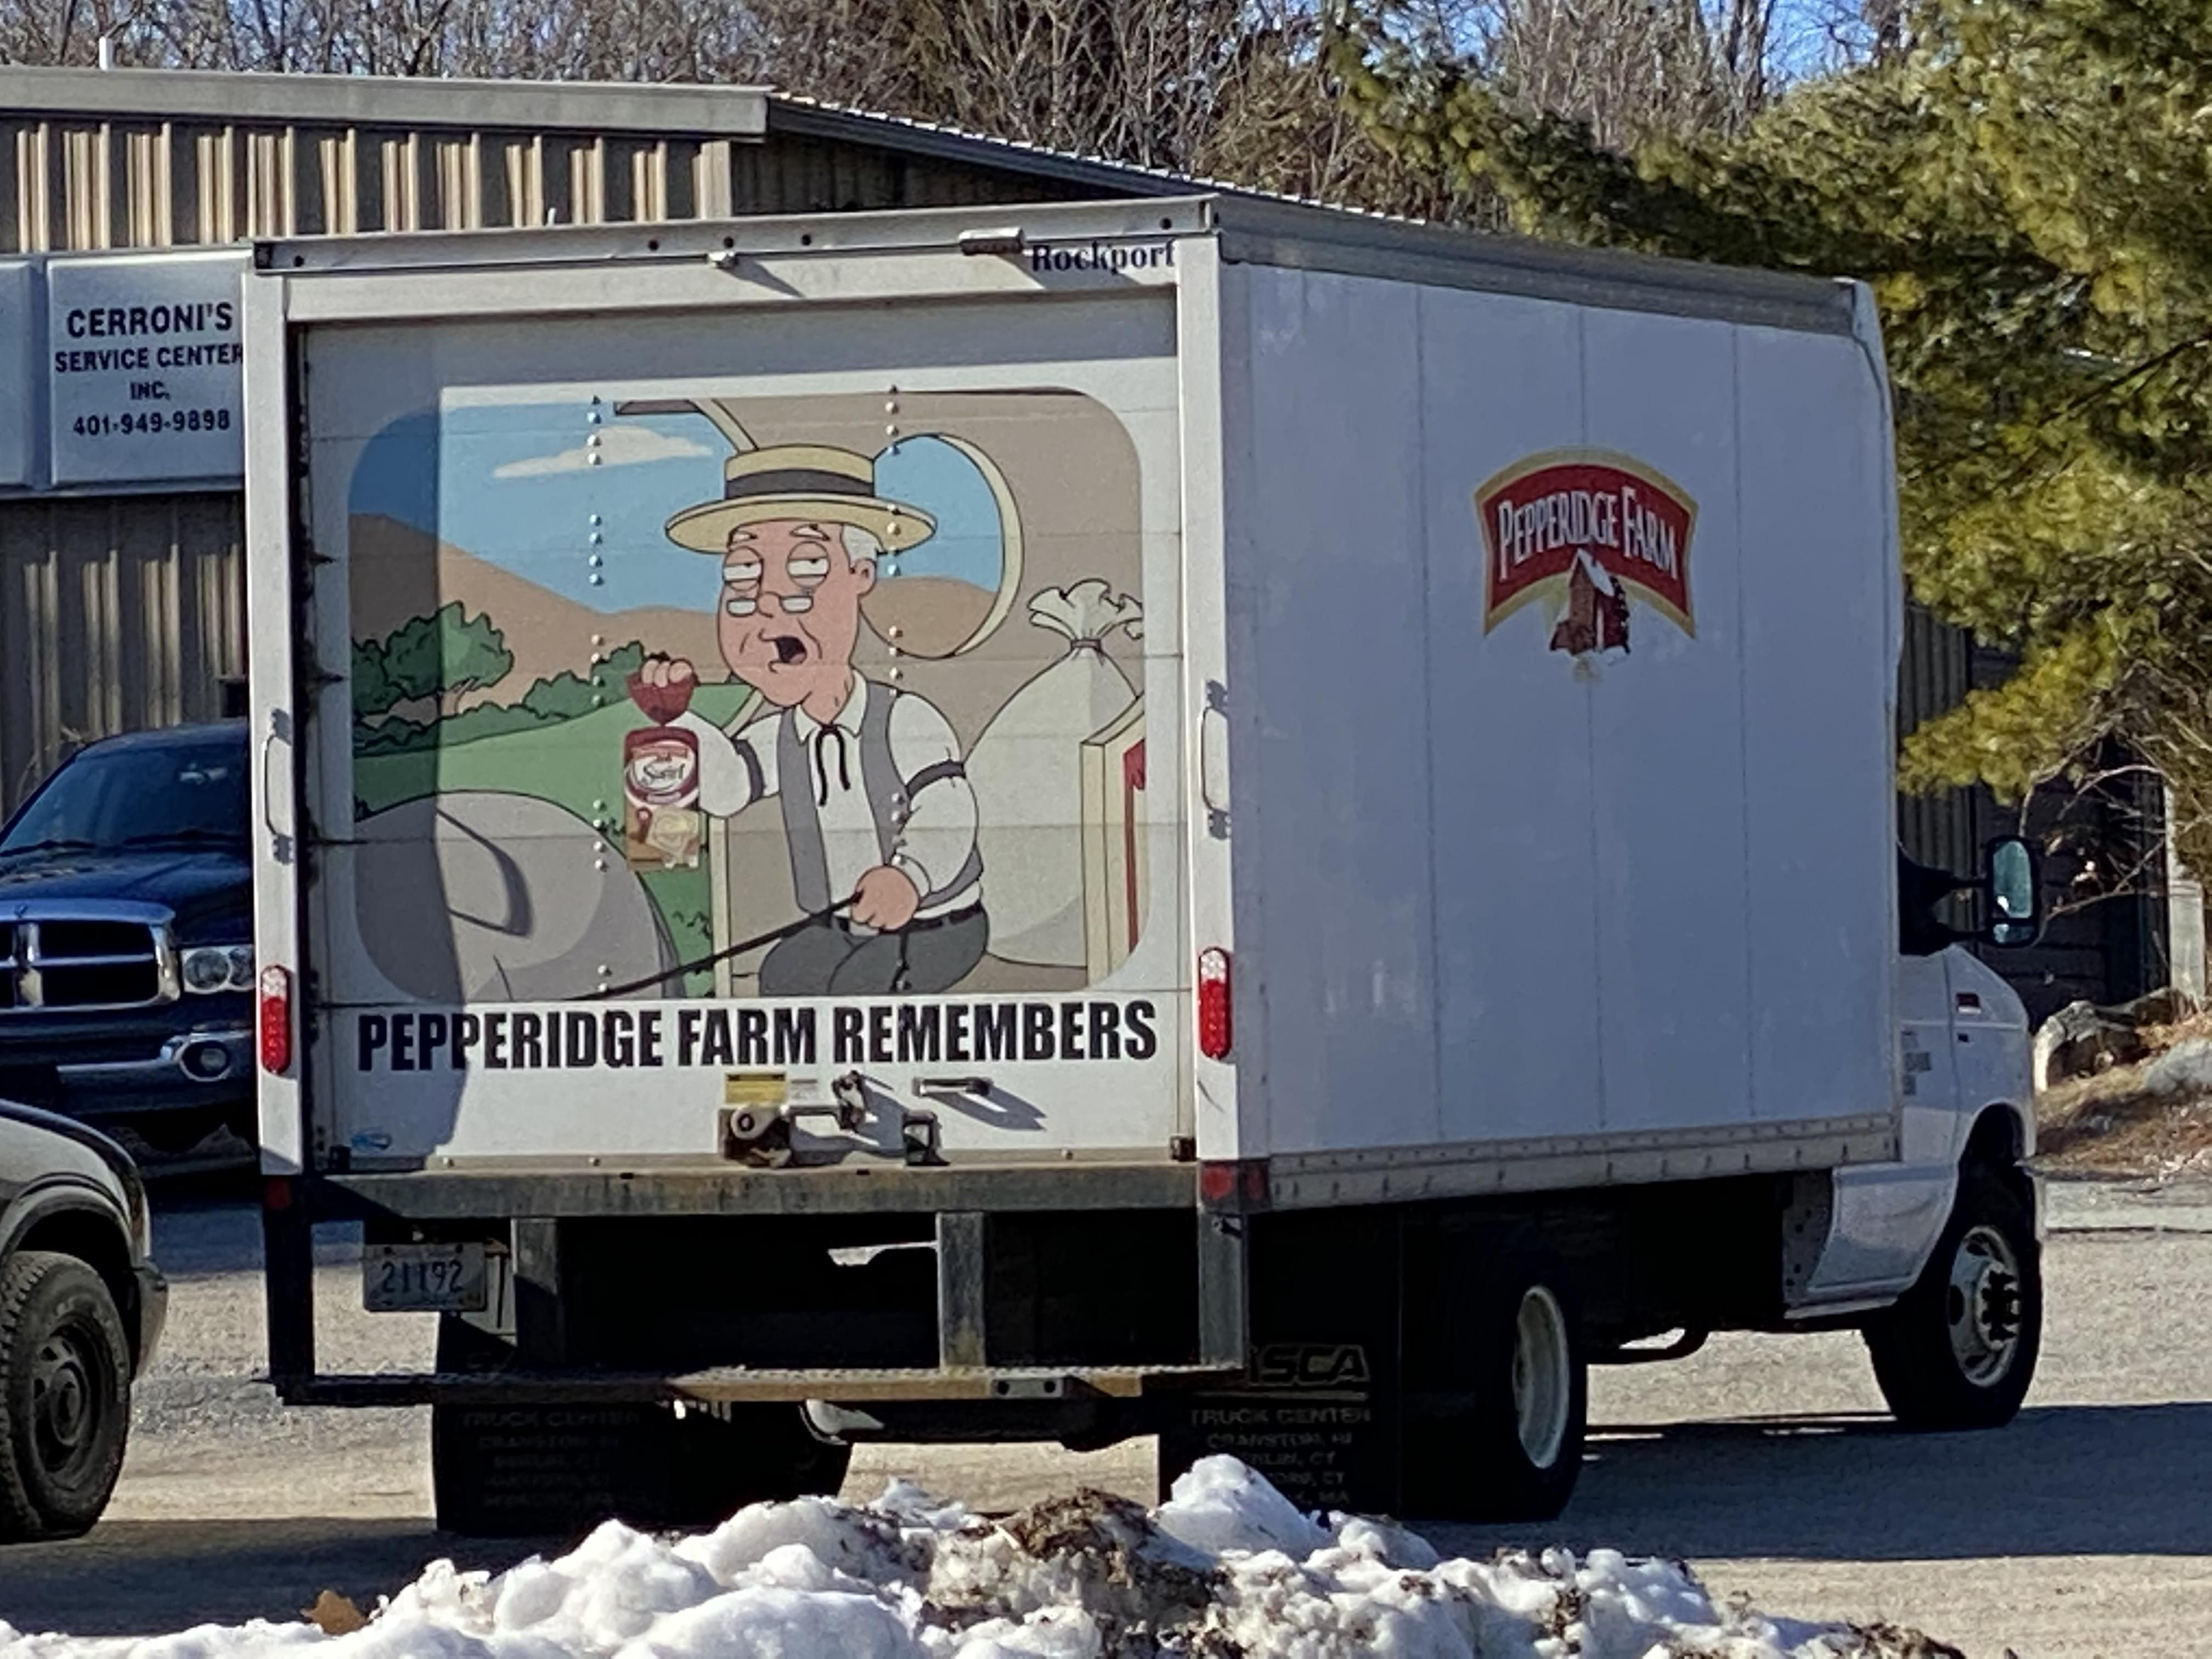 The back of an ACTUAL Pepperidge Farms truck.